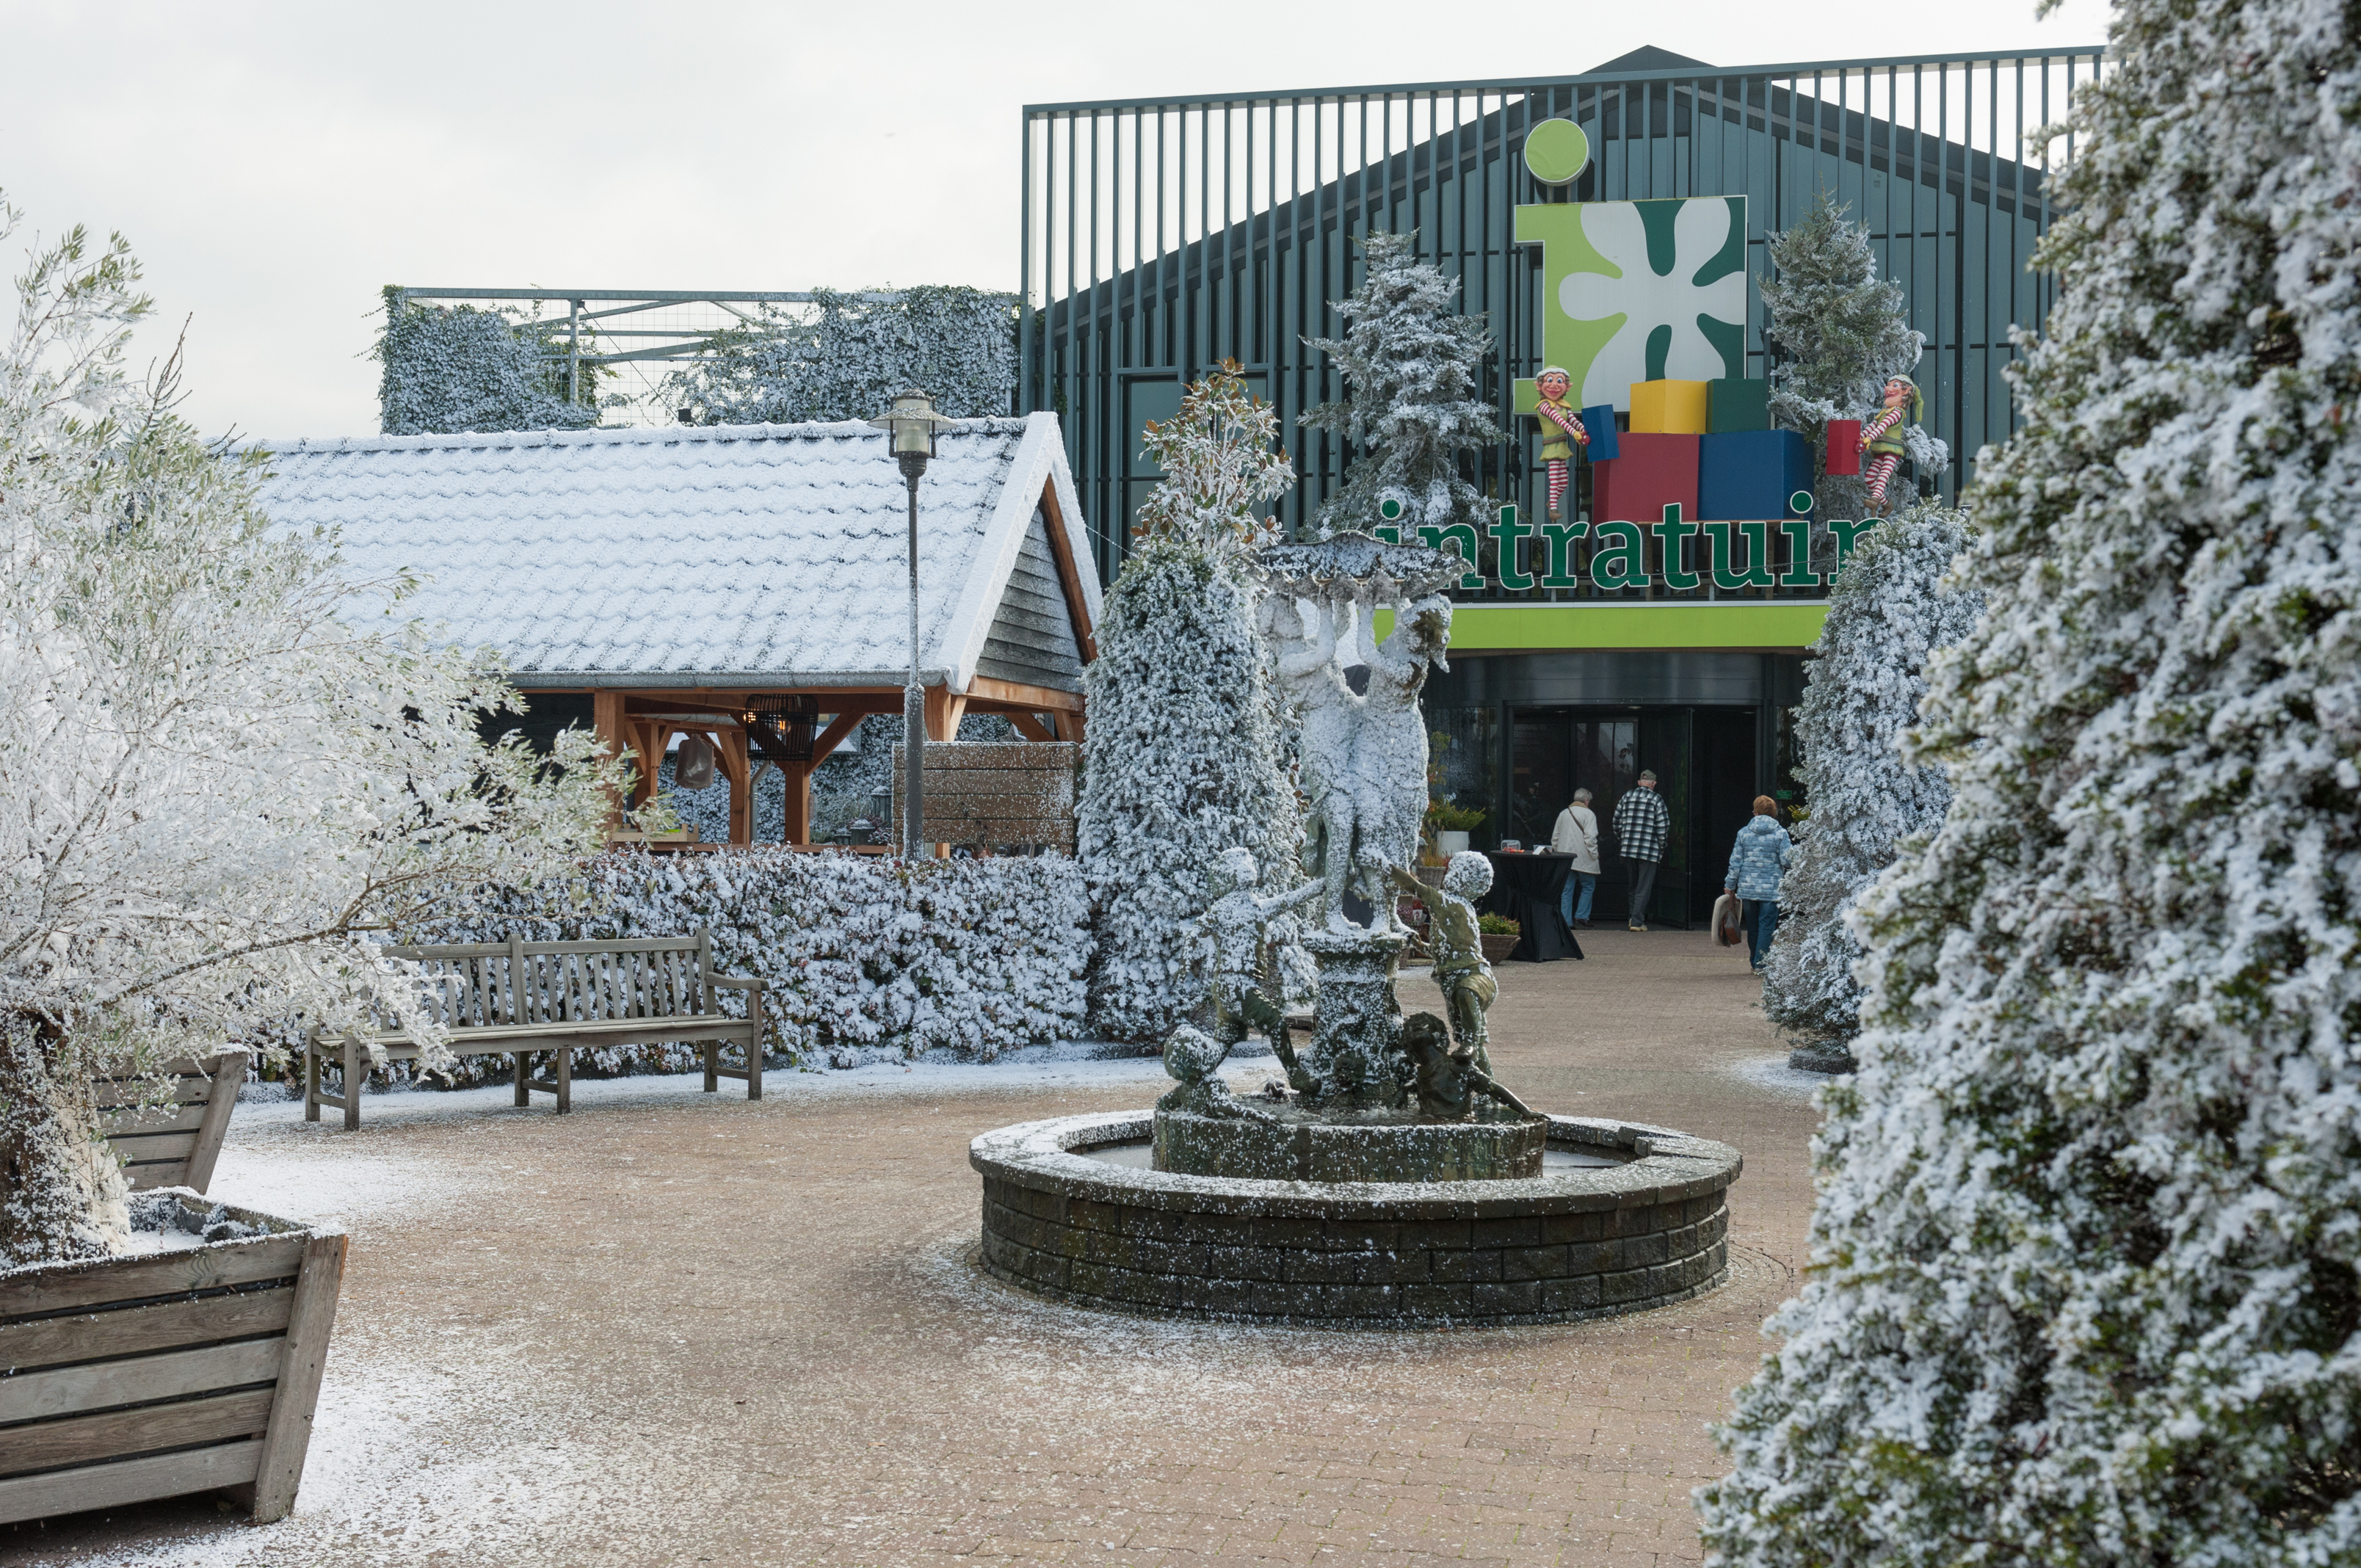 Kerstshow intratuin halsteren 2016 warm winterwonderland for Halsteren intratuin